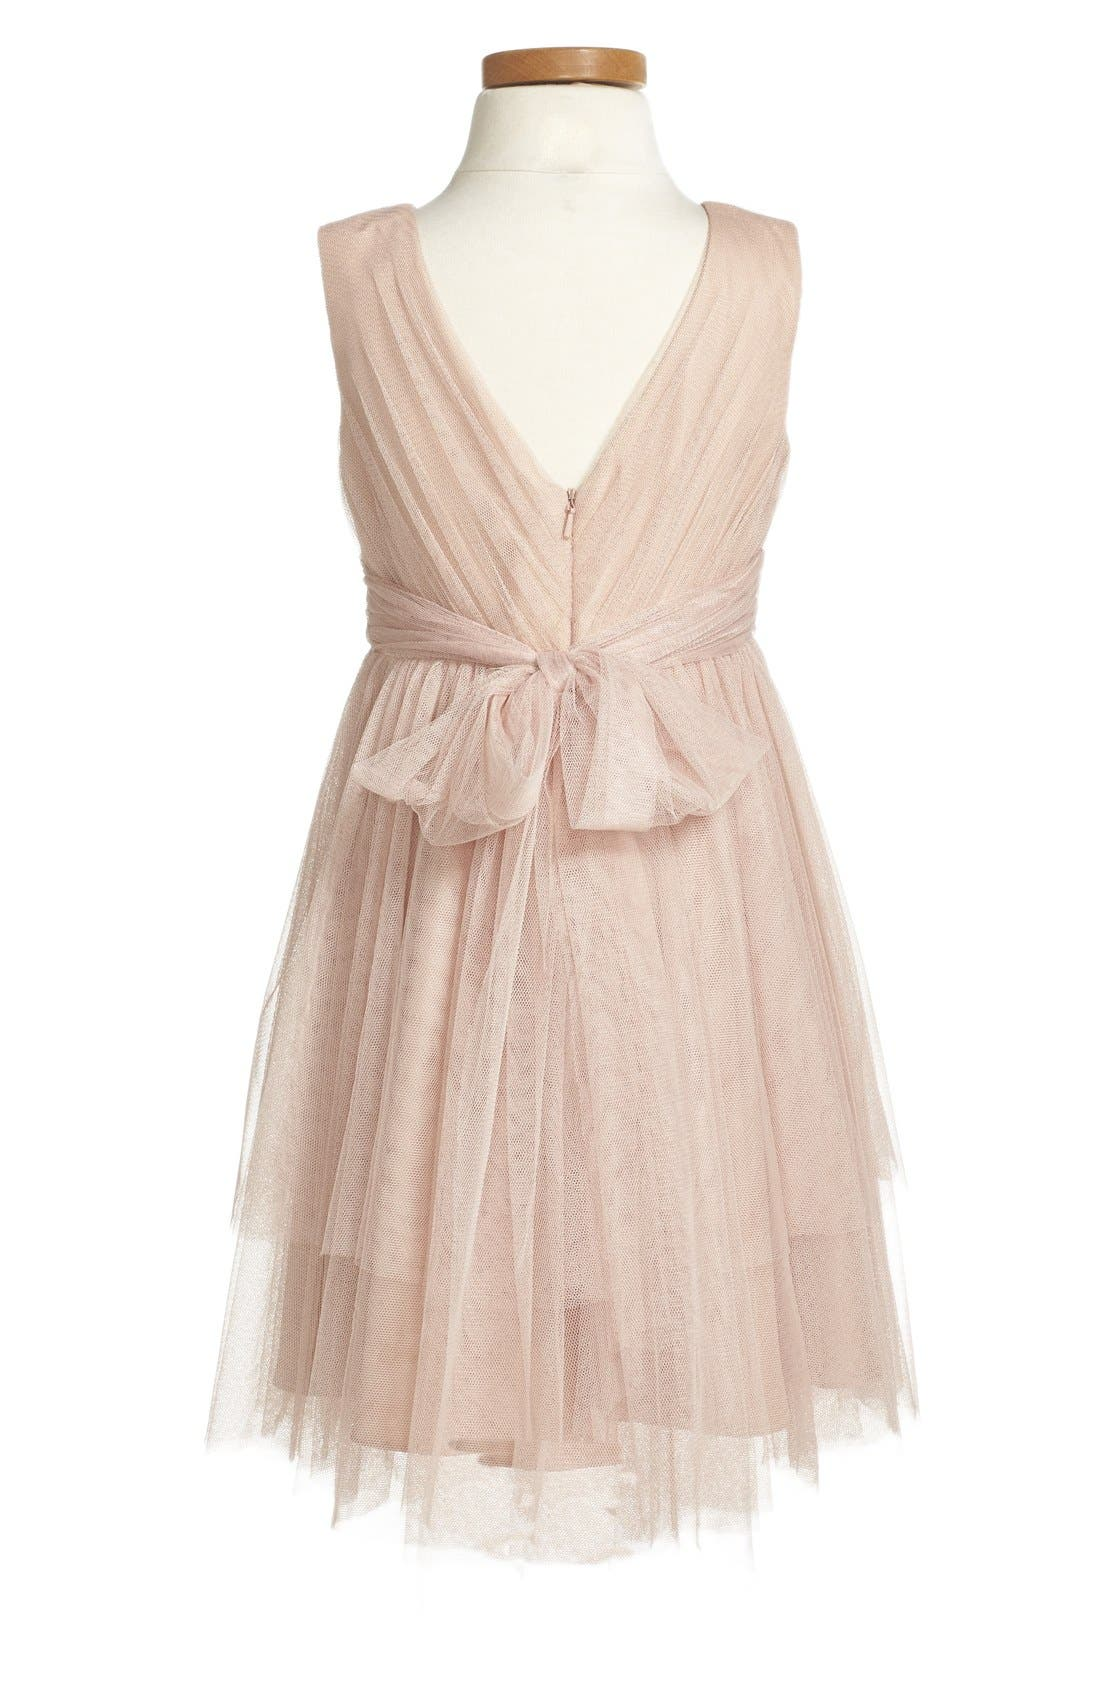 Etsy Tulle Dress,                             Alternate thumbnail 2, color,                             CAMEO PINK